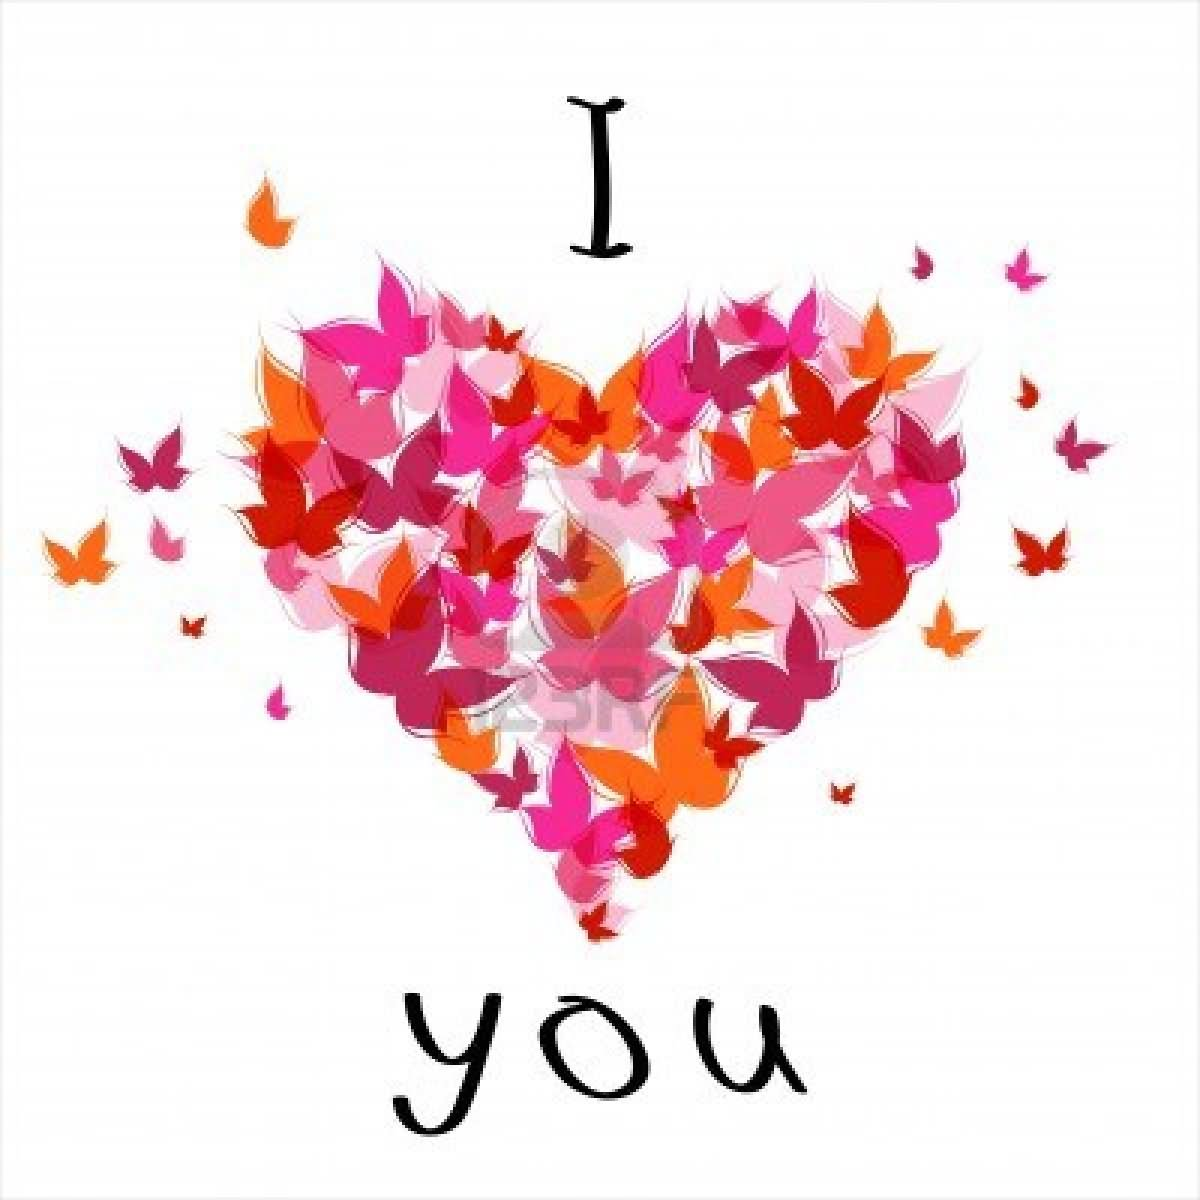 Love You Heart Of Butterflies Animated Graphic